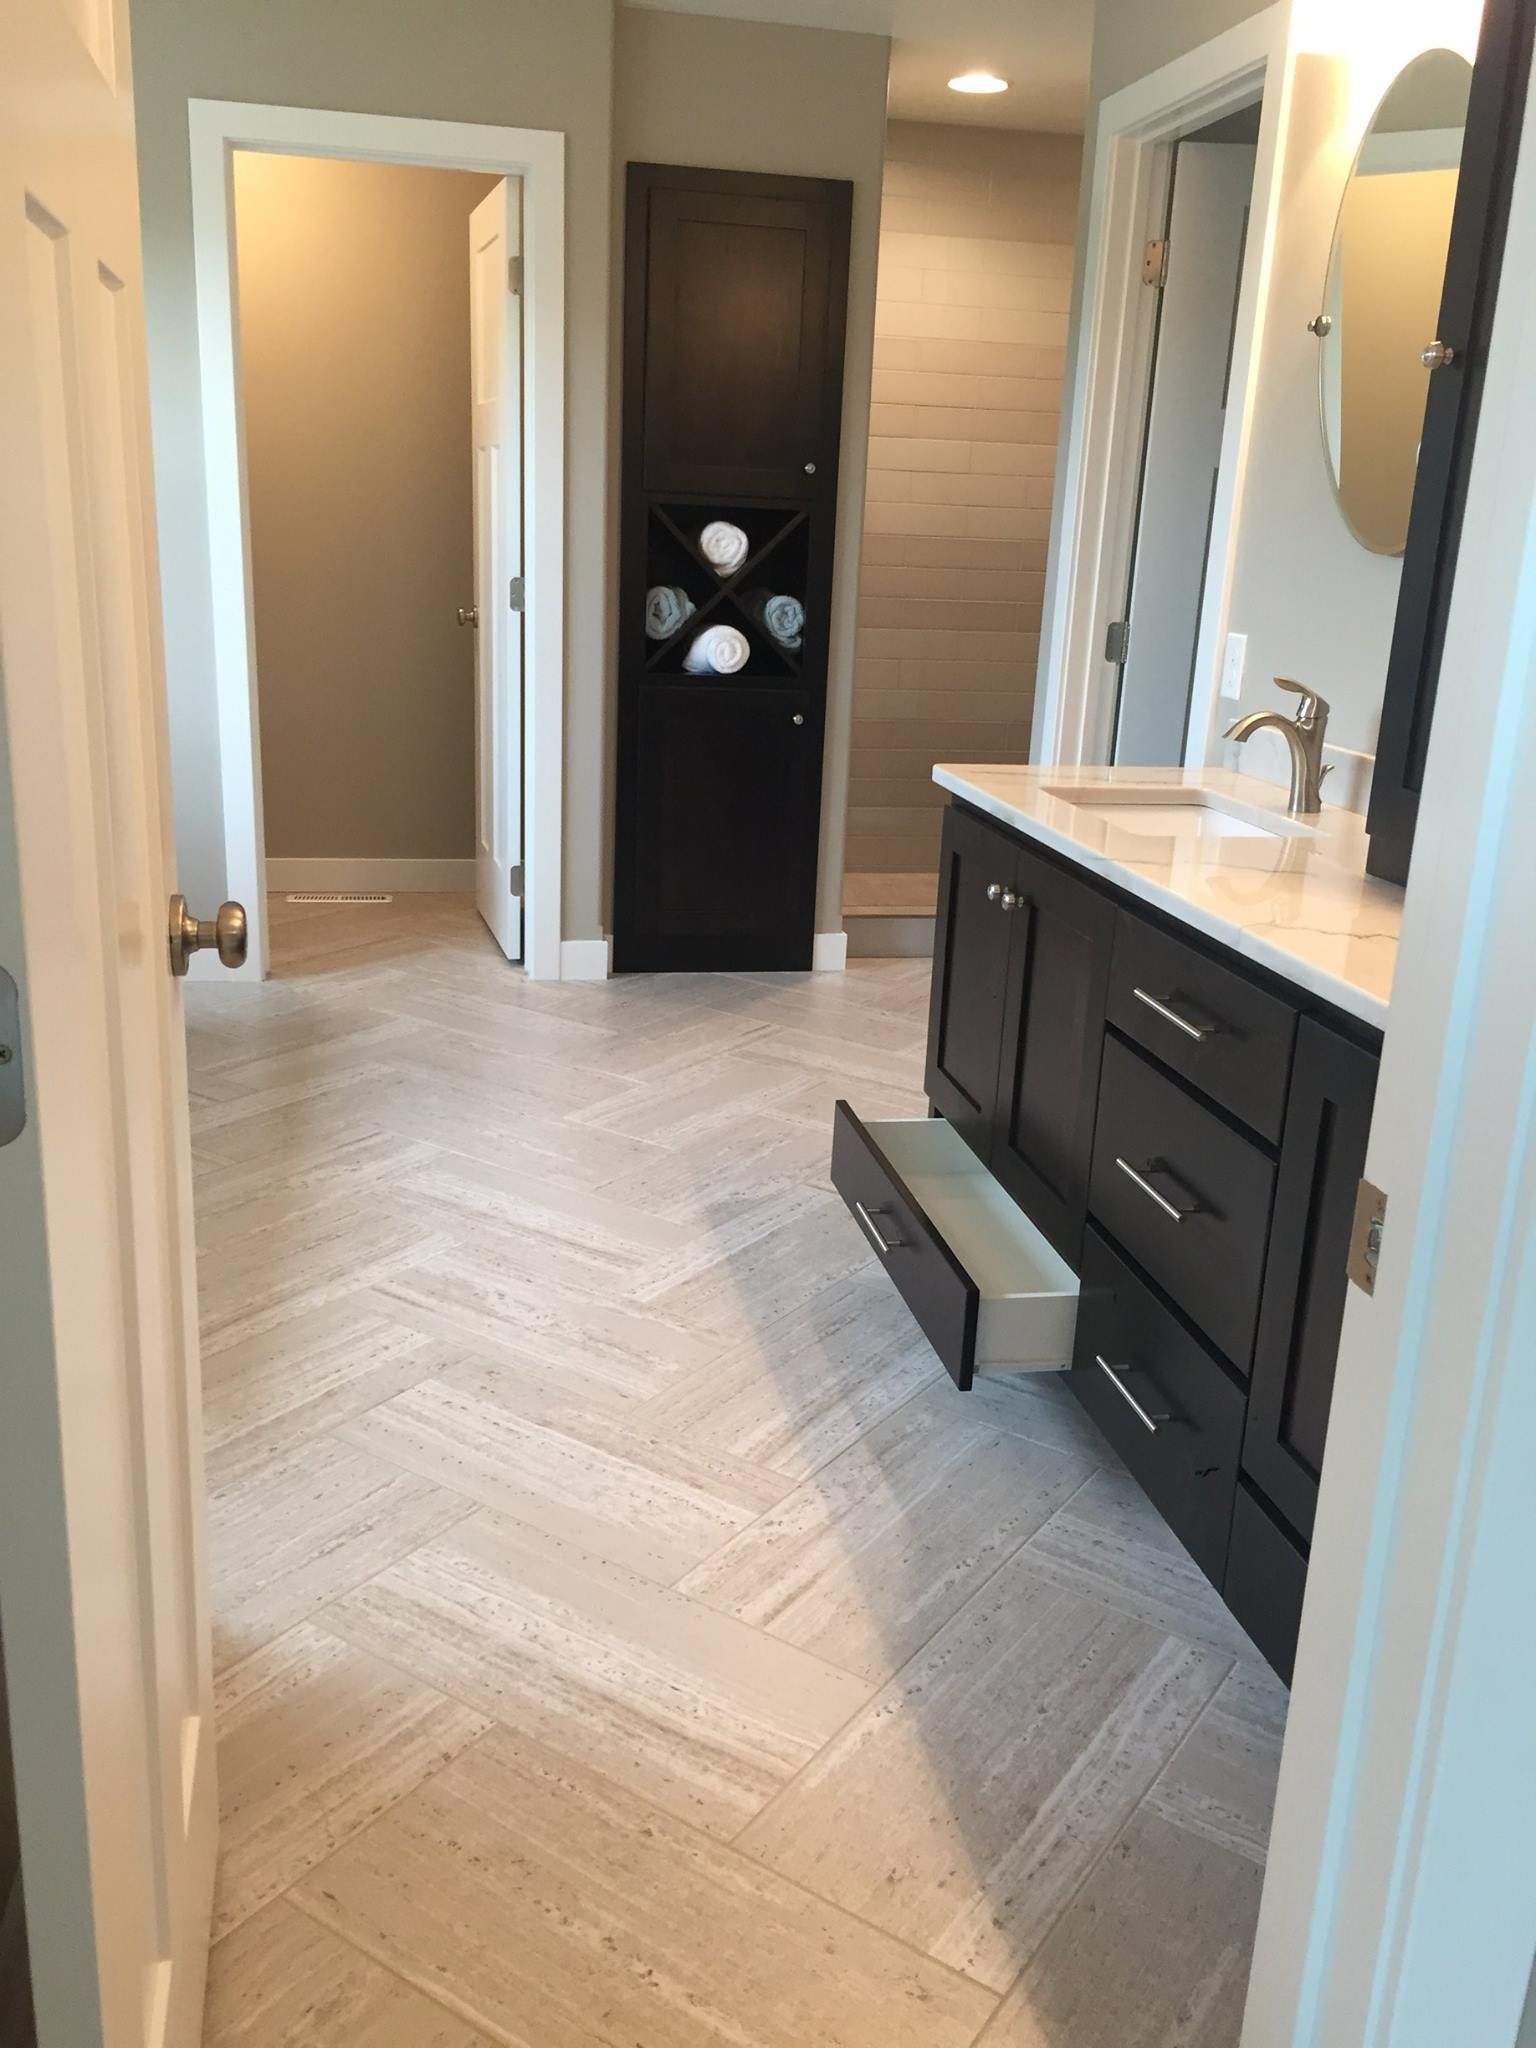 12 X 24 Vinyl Tile Laid In Herringbone Pattern Tile Remodel Herringbone Tile Floors Luxury Vinyl Tile Flooring